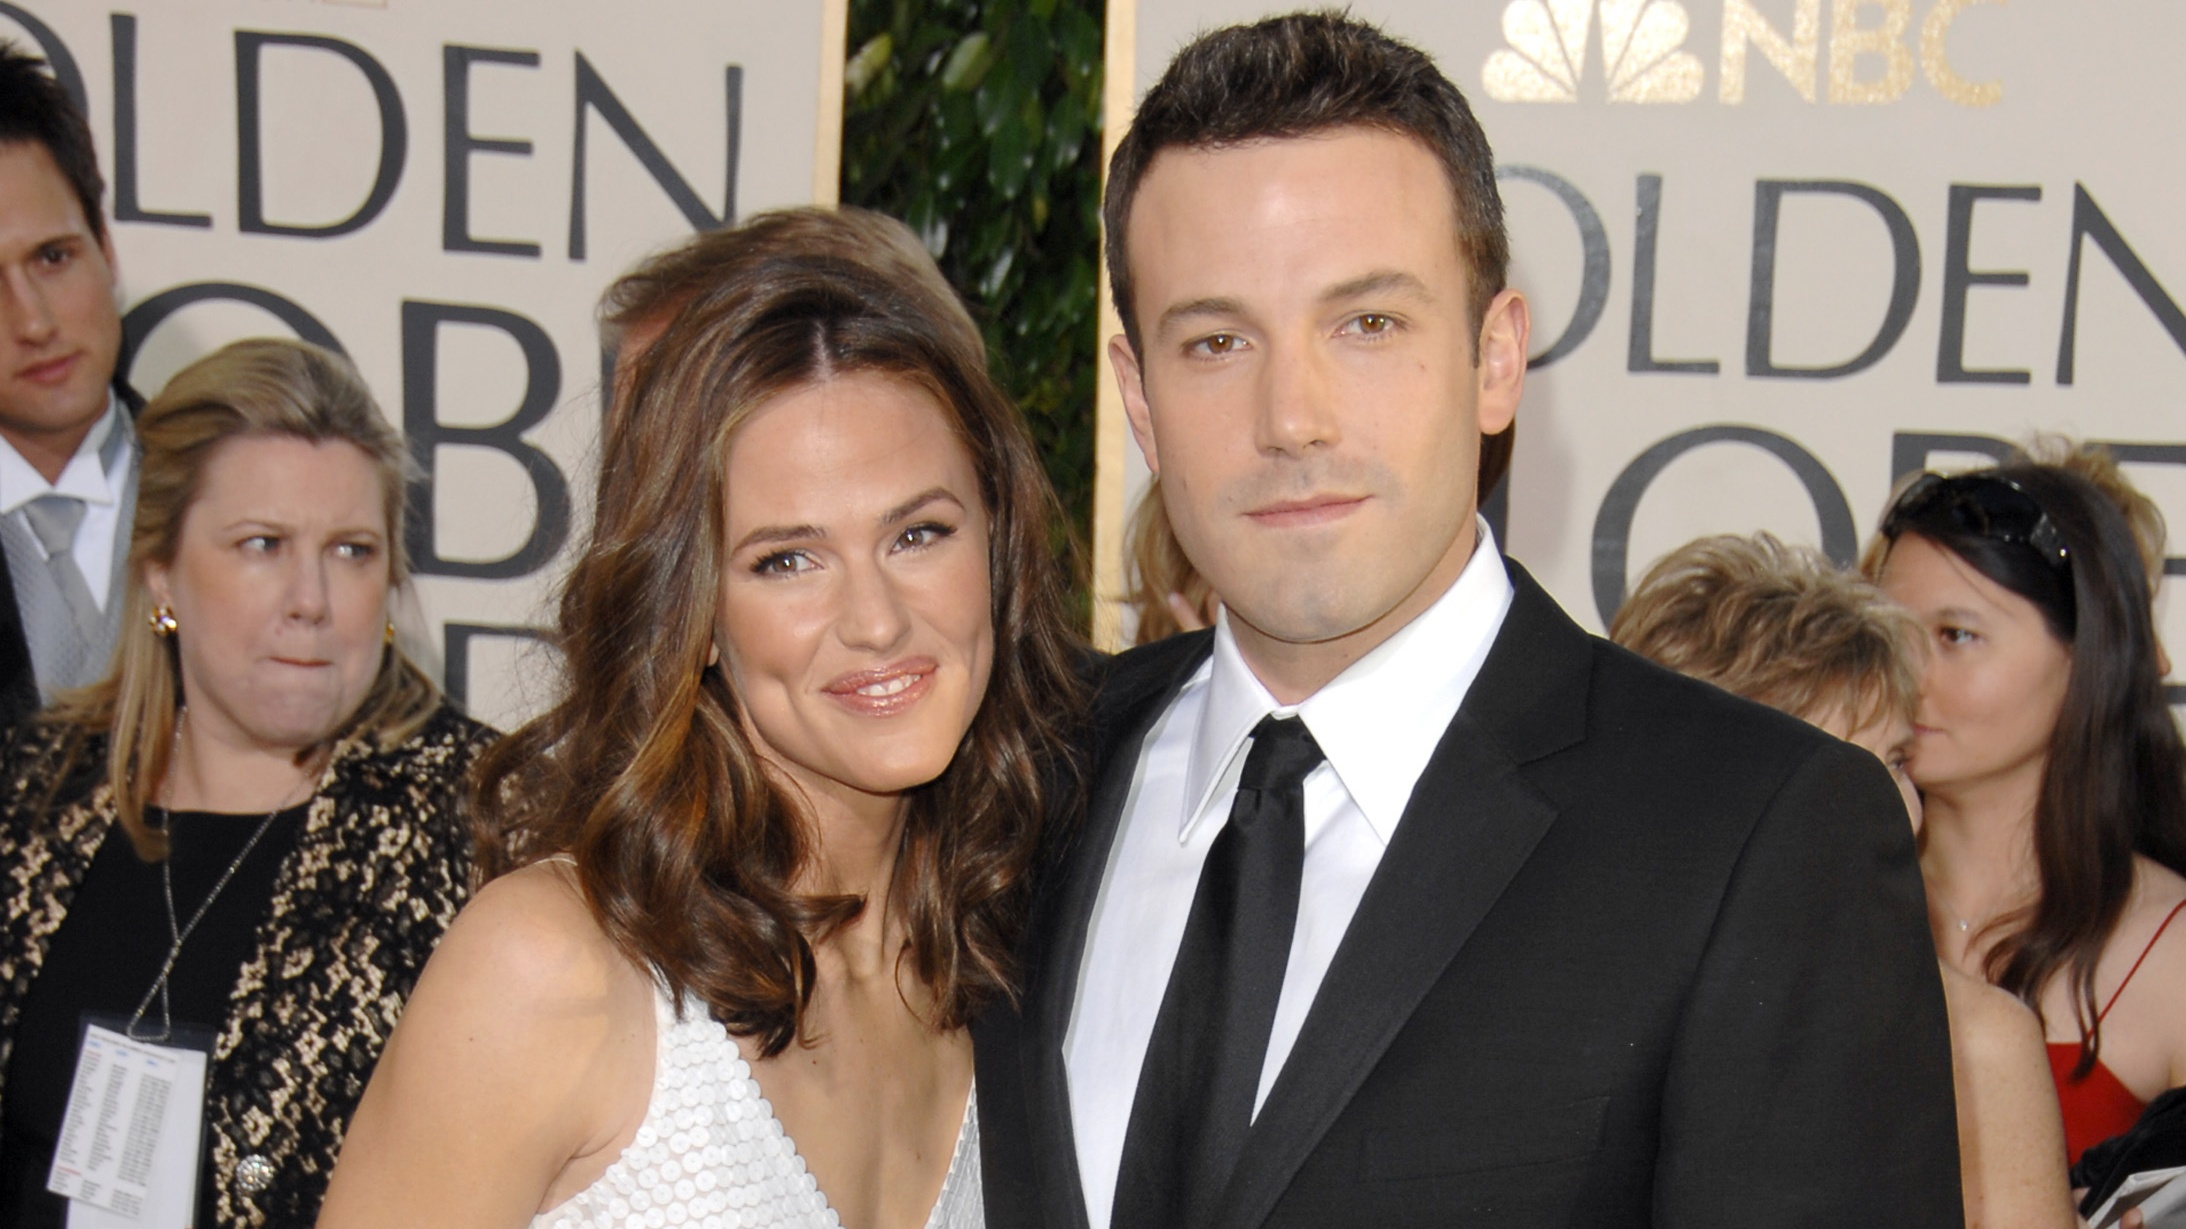 Jennifer Garner On The Hardest Part Of Ben Affleck Split - Grazia